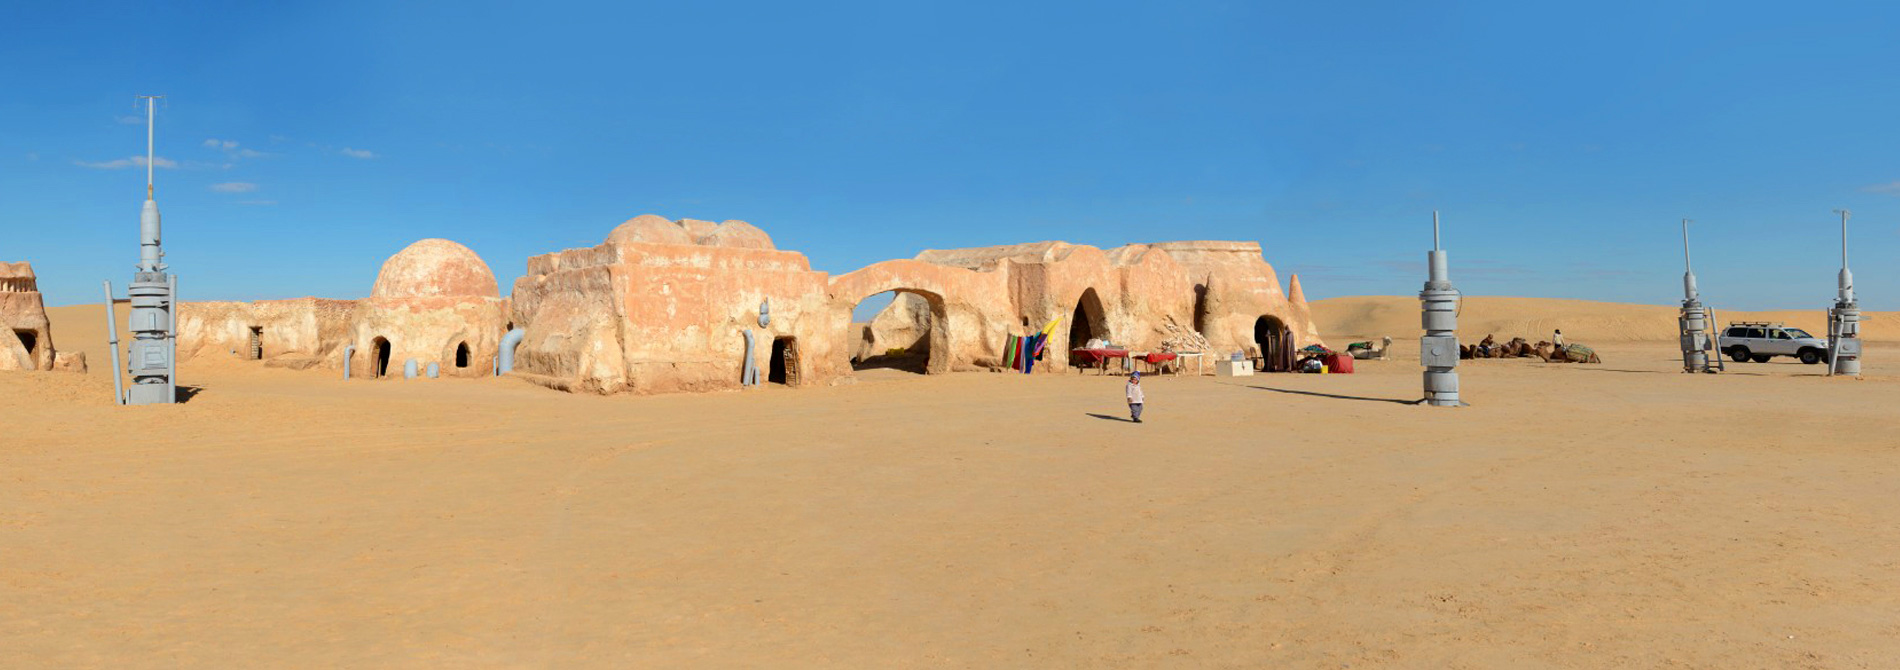 Star Wars Holiday Discover Tunisia